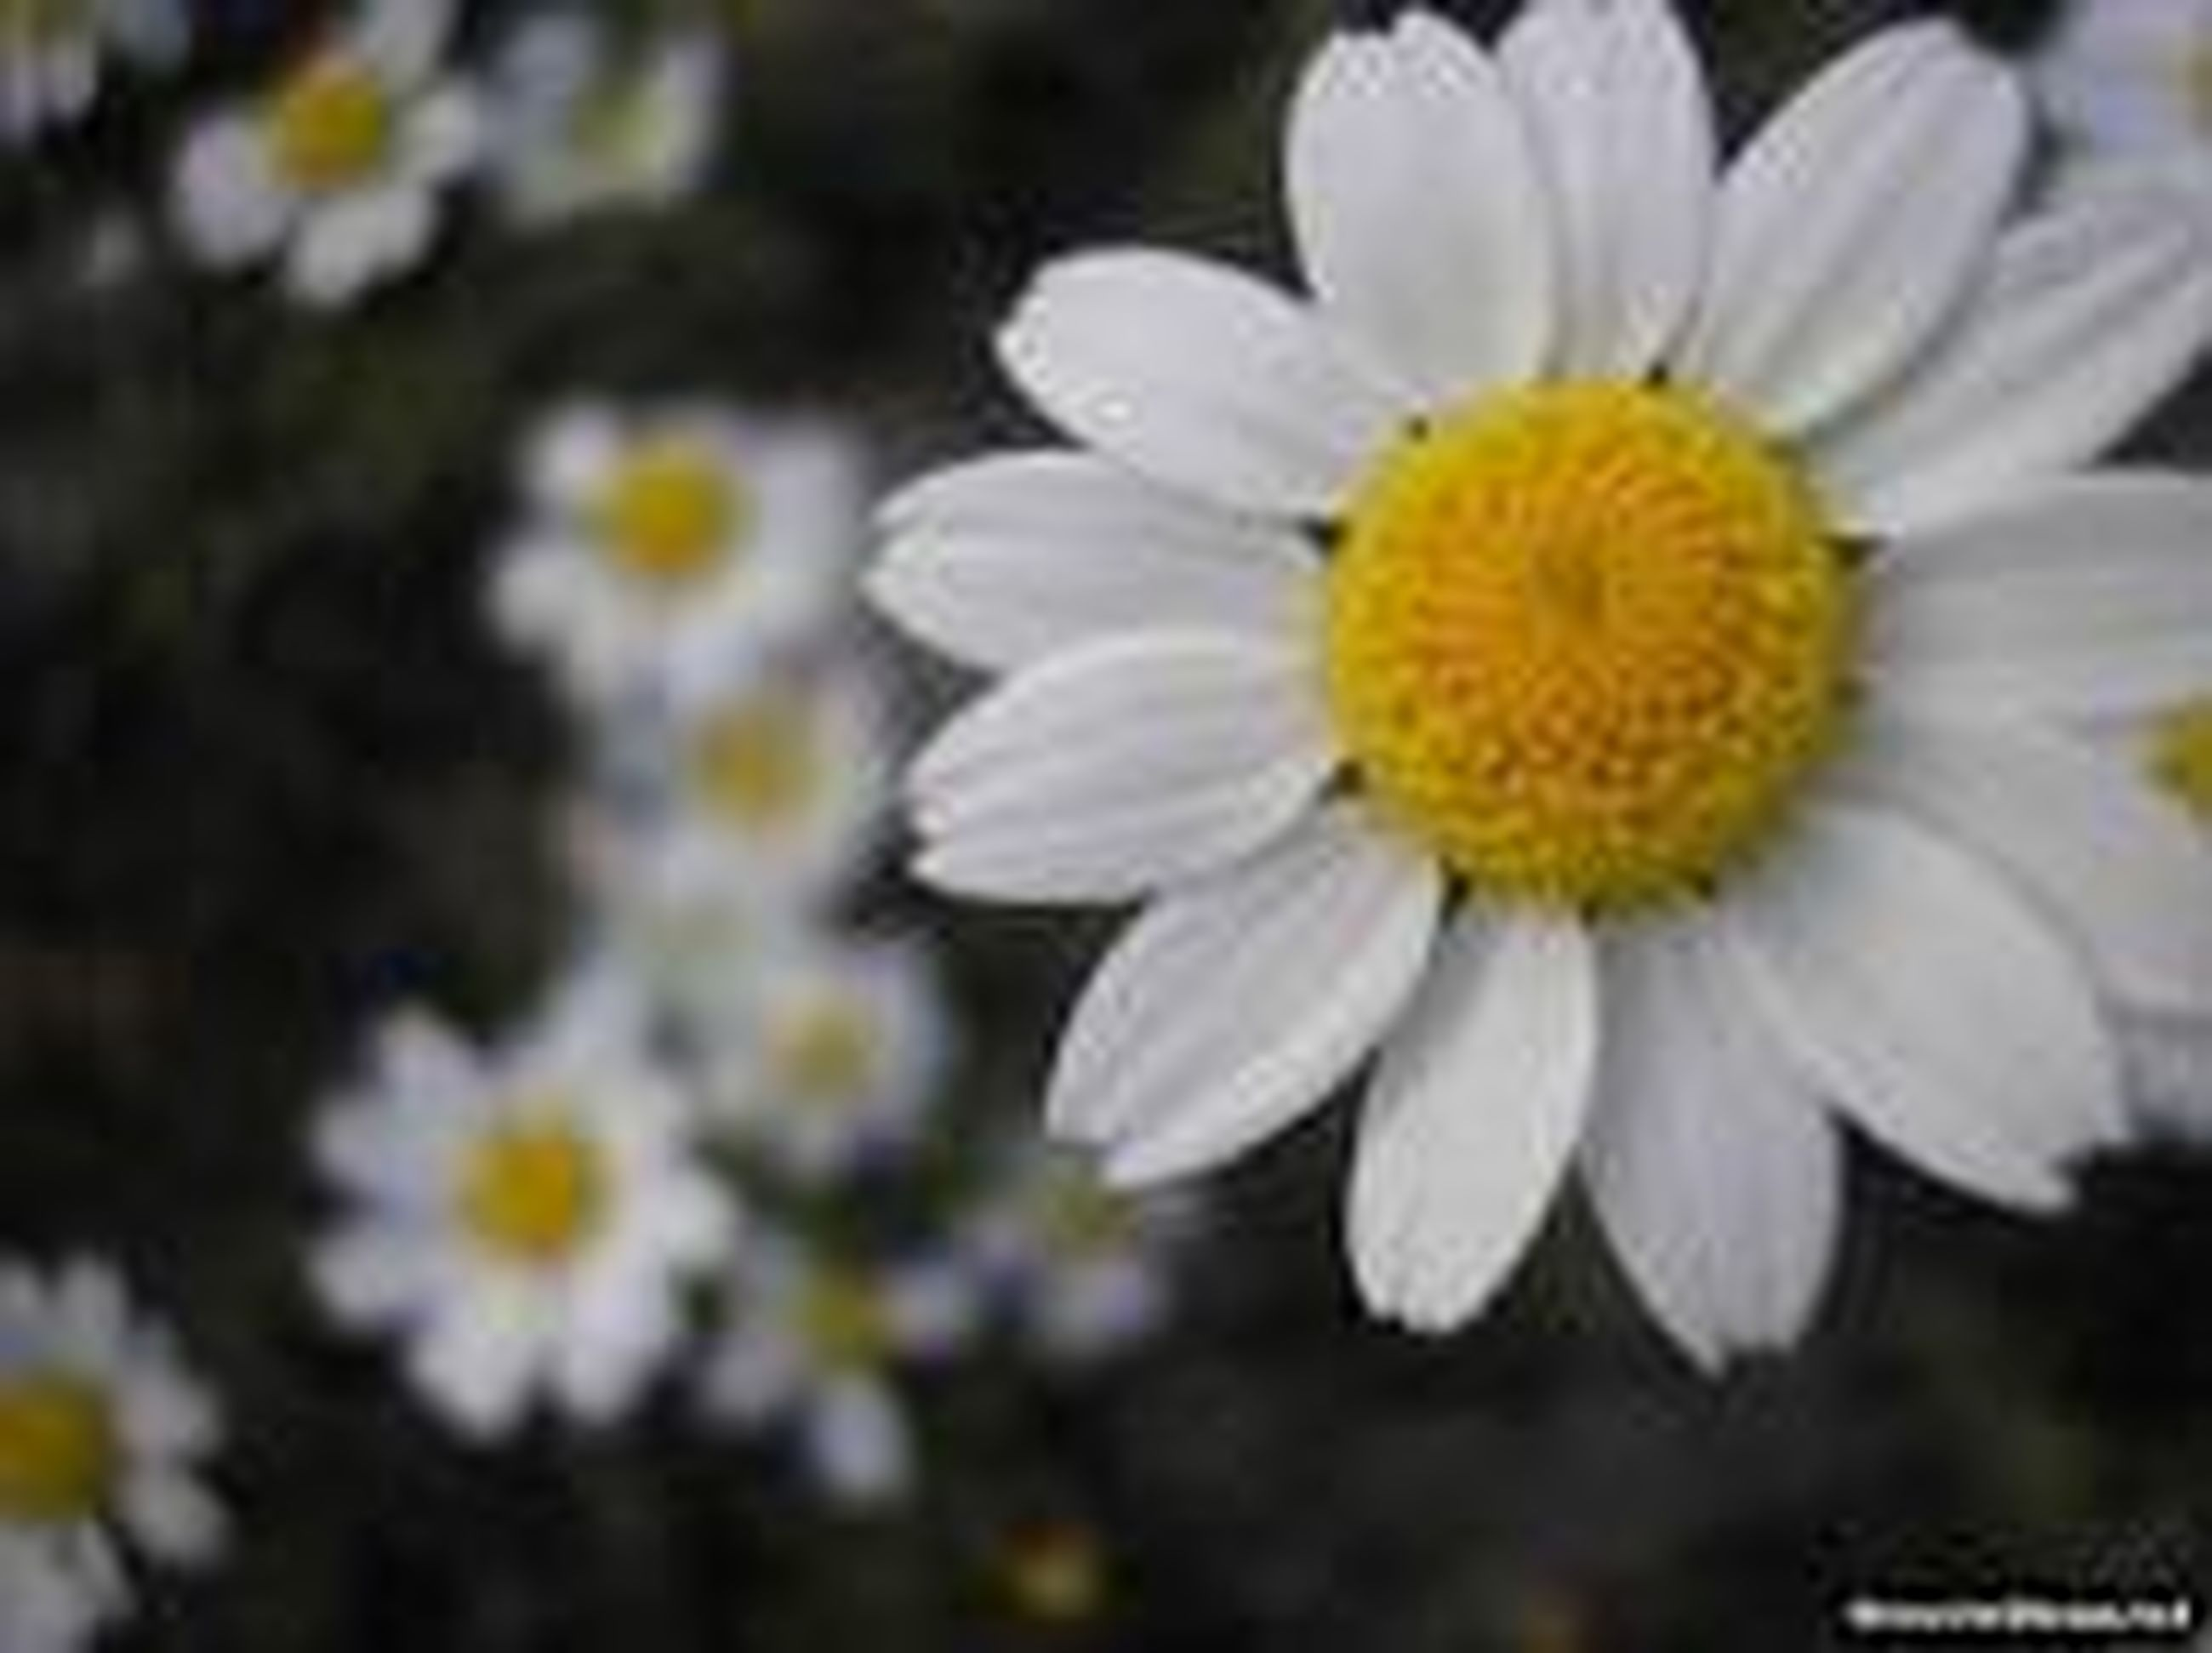 flower, freshness, petal, fragility, flower head, growth, yellow, beauty in nature, white color, daisy, nature, blooming, close-up, pollen, focus on foreground, plant, in bloom, selective focus, outdoors, day